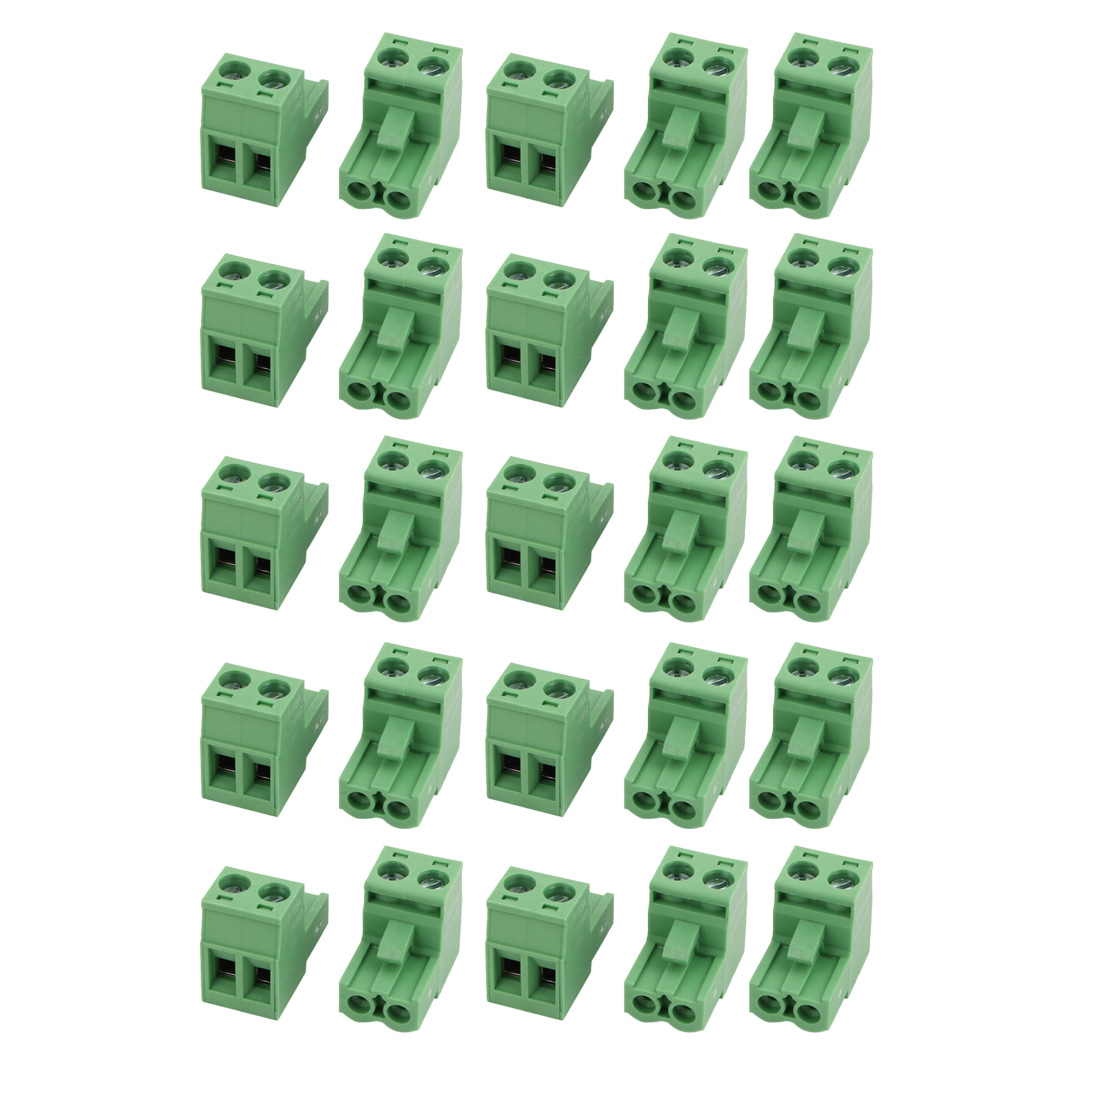 25Pcs LC1 AC300V 15A 5.08mm Pitch 2P PCB Mount Terminal Block Wire Connector